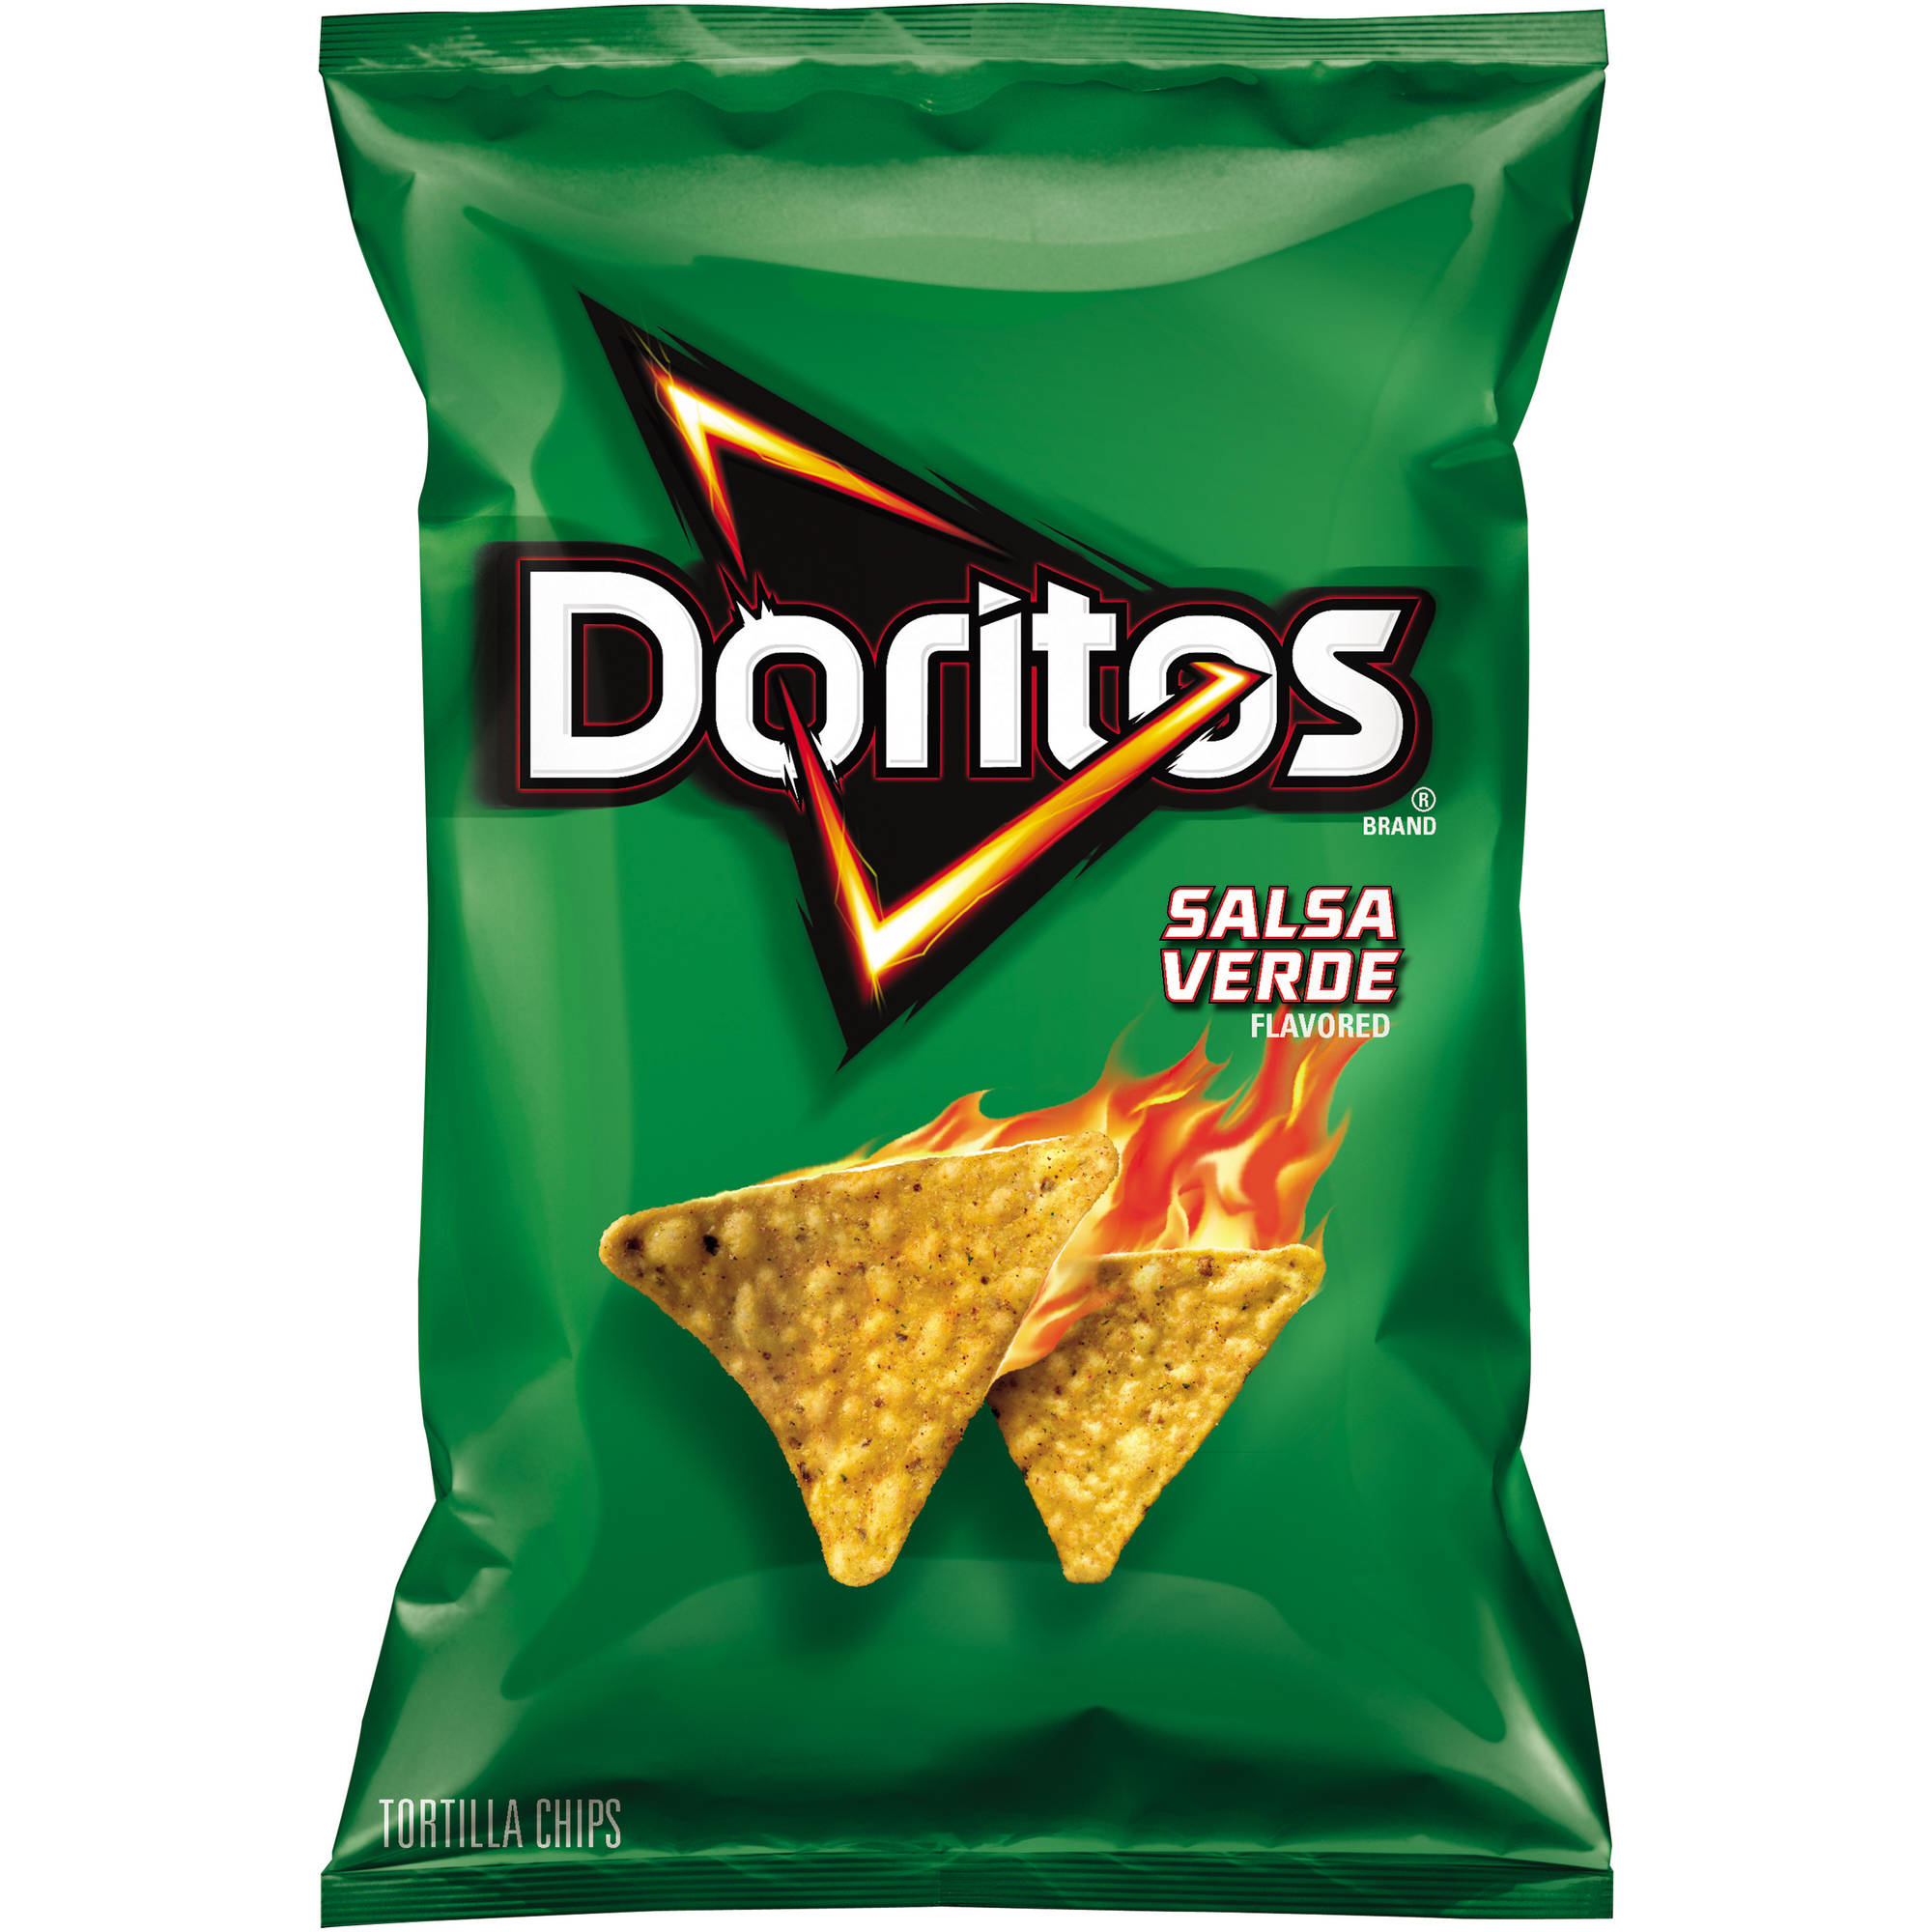 Doritos Salsa Verde Tortilla Chips, 10 oz